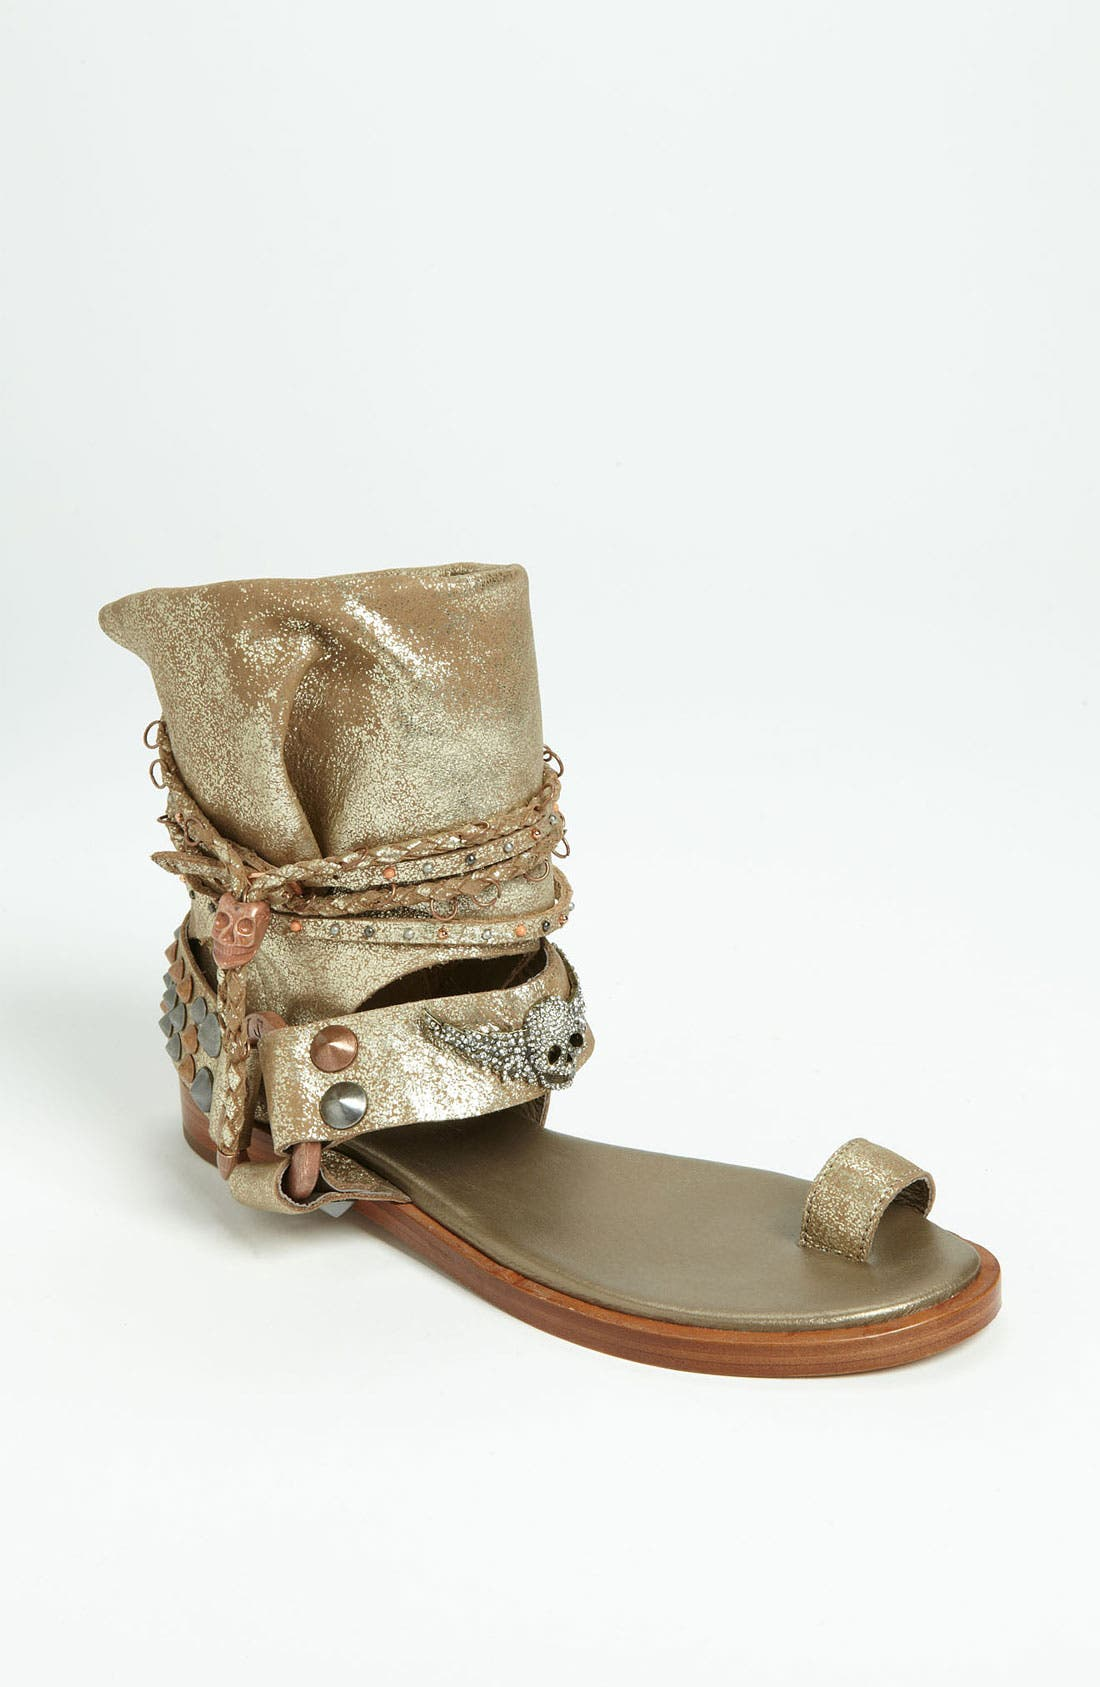 Alternate Image 1 Selected - Zadig & Voltaire 'Paige' Sandal